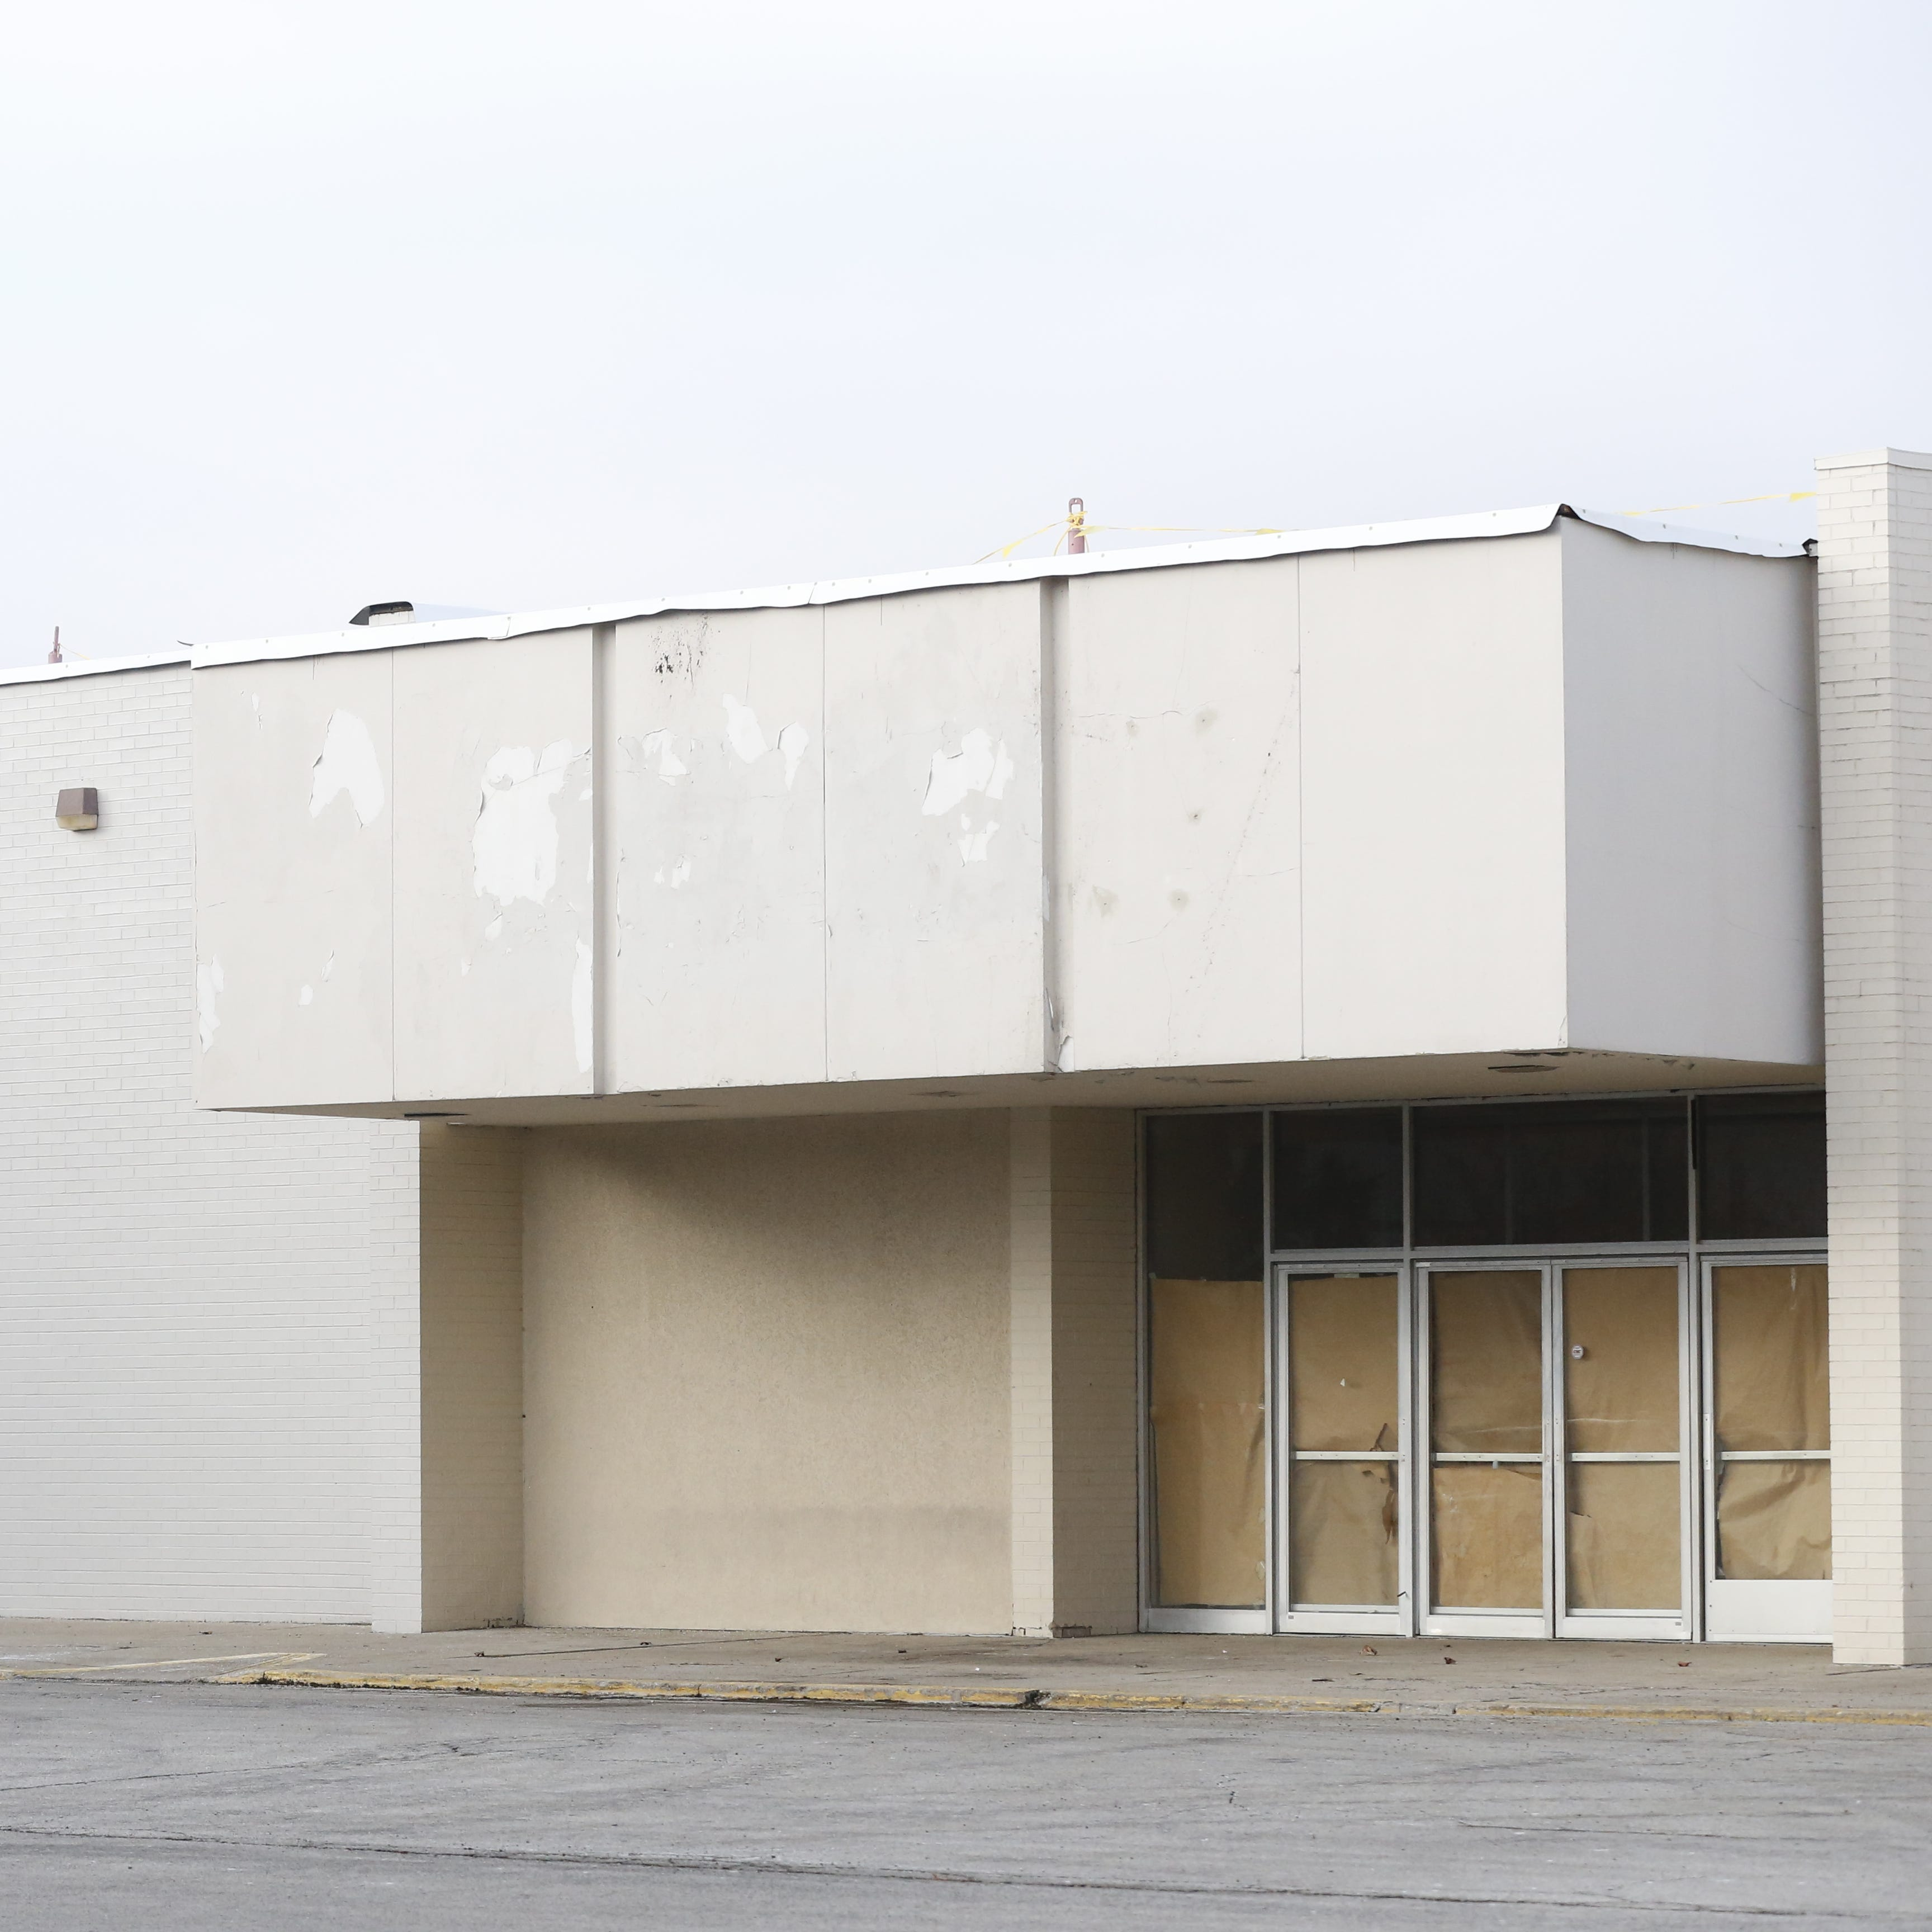 Richmond Mall owner: Dunham's Sports will take old Sears space